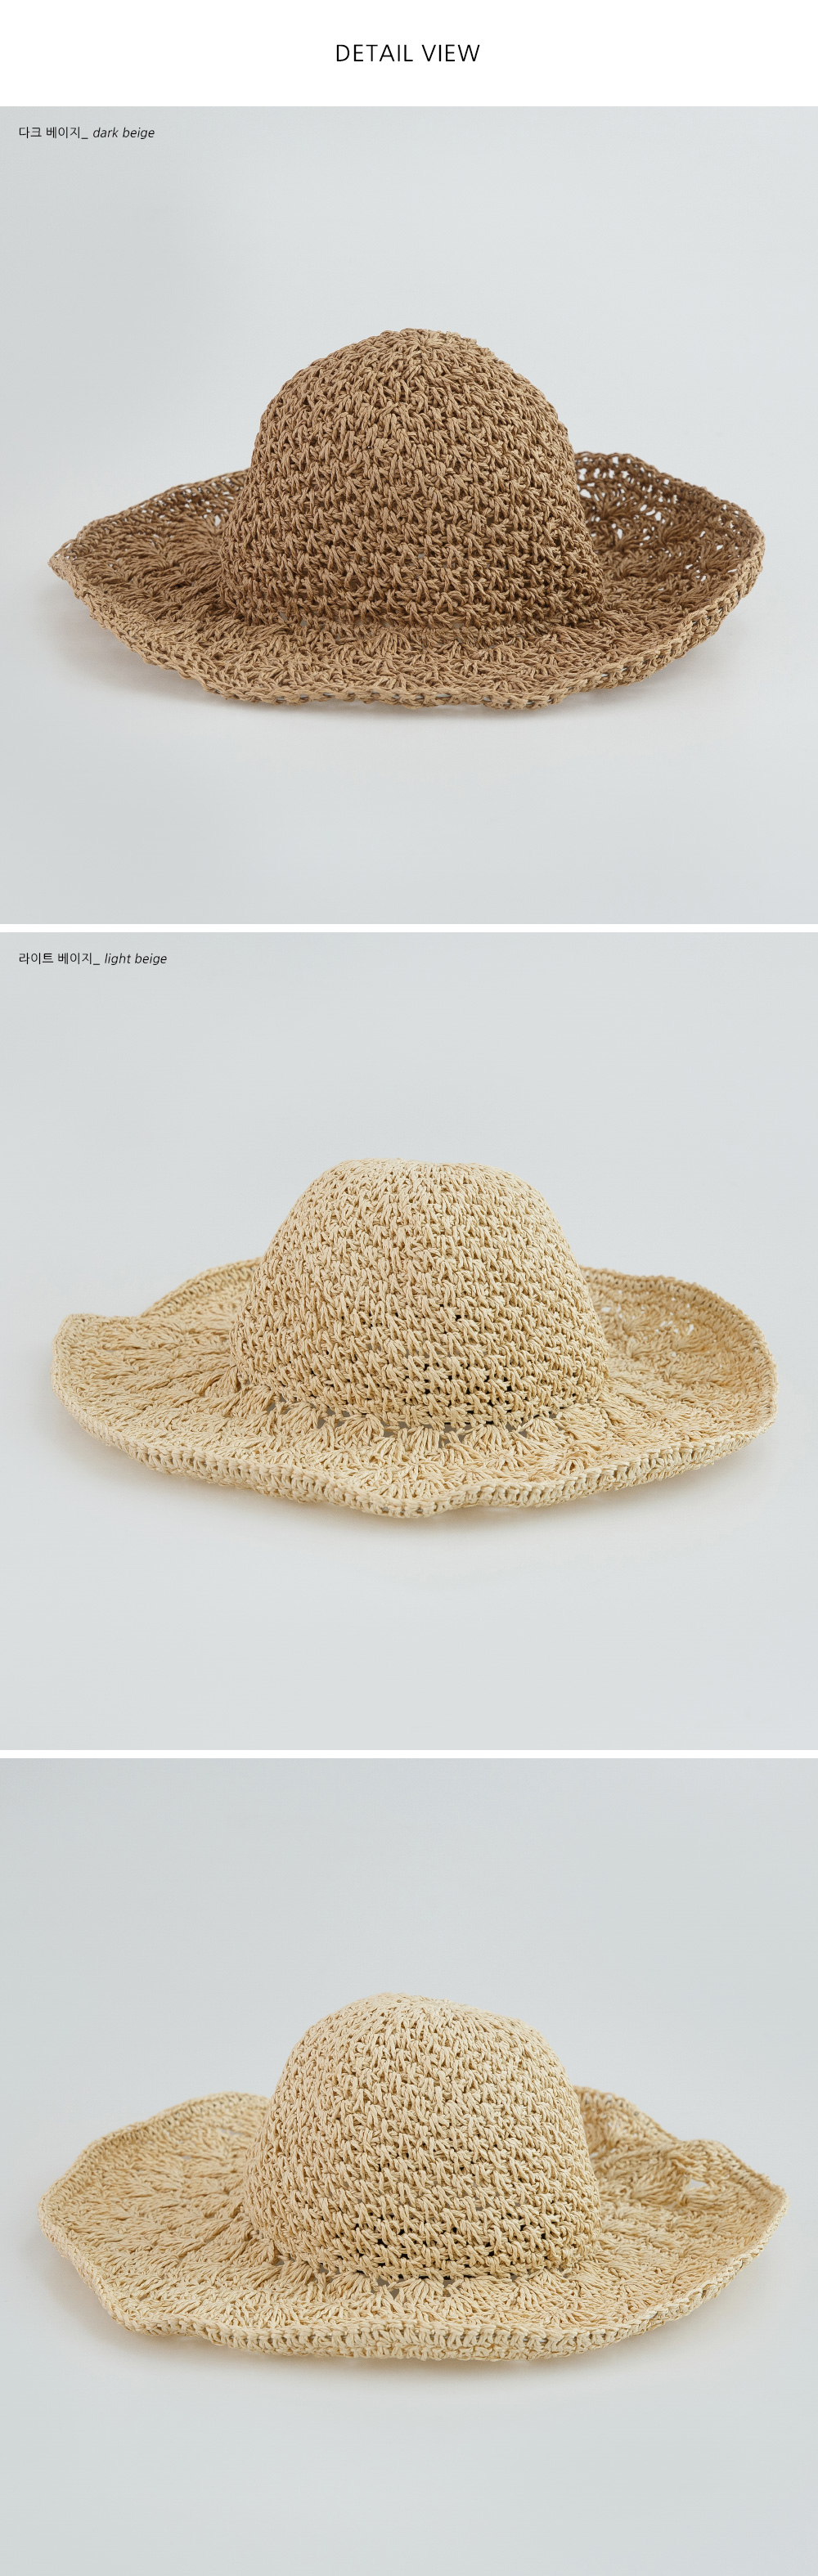 natural mood bucket hat